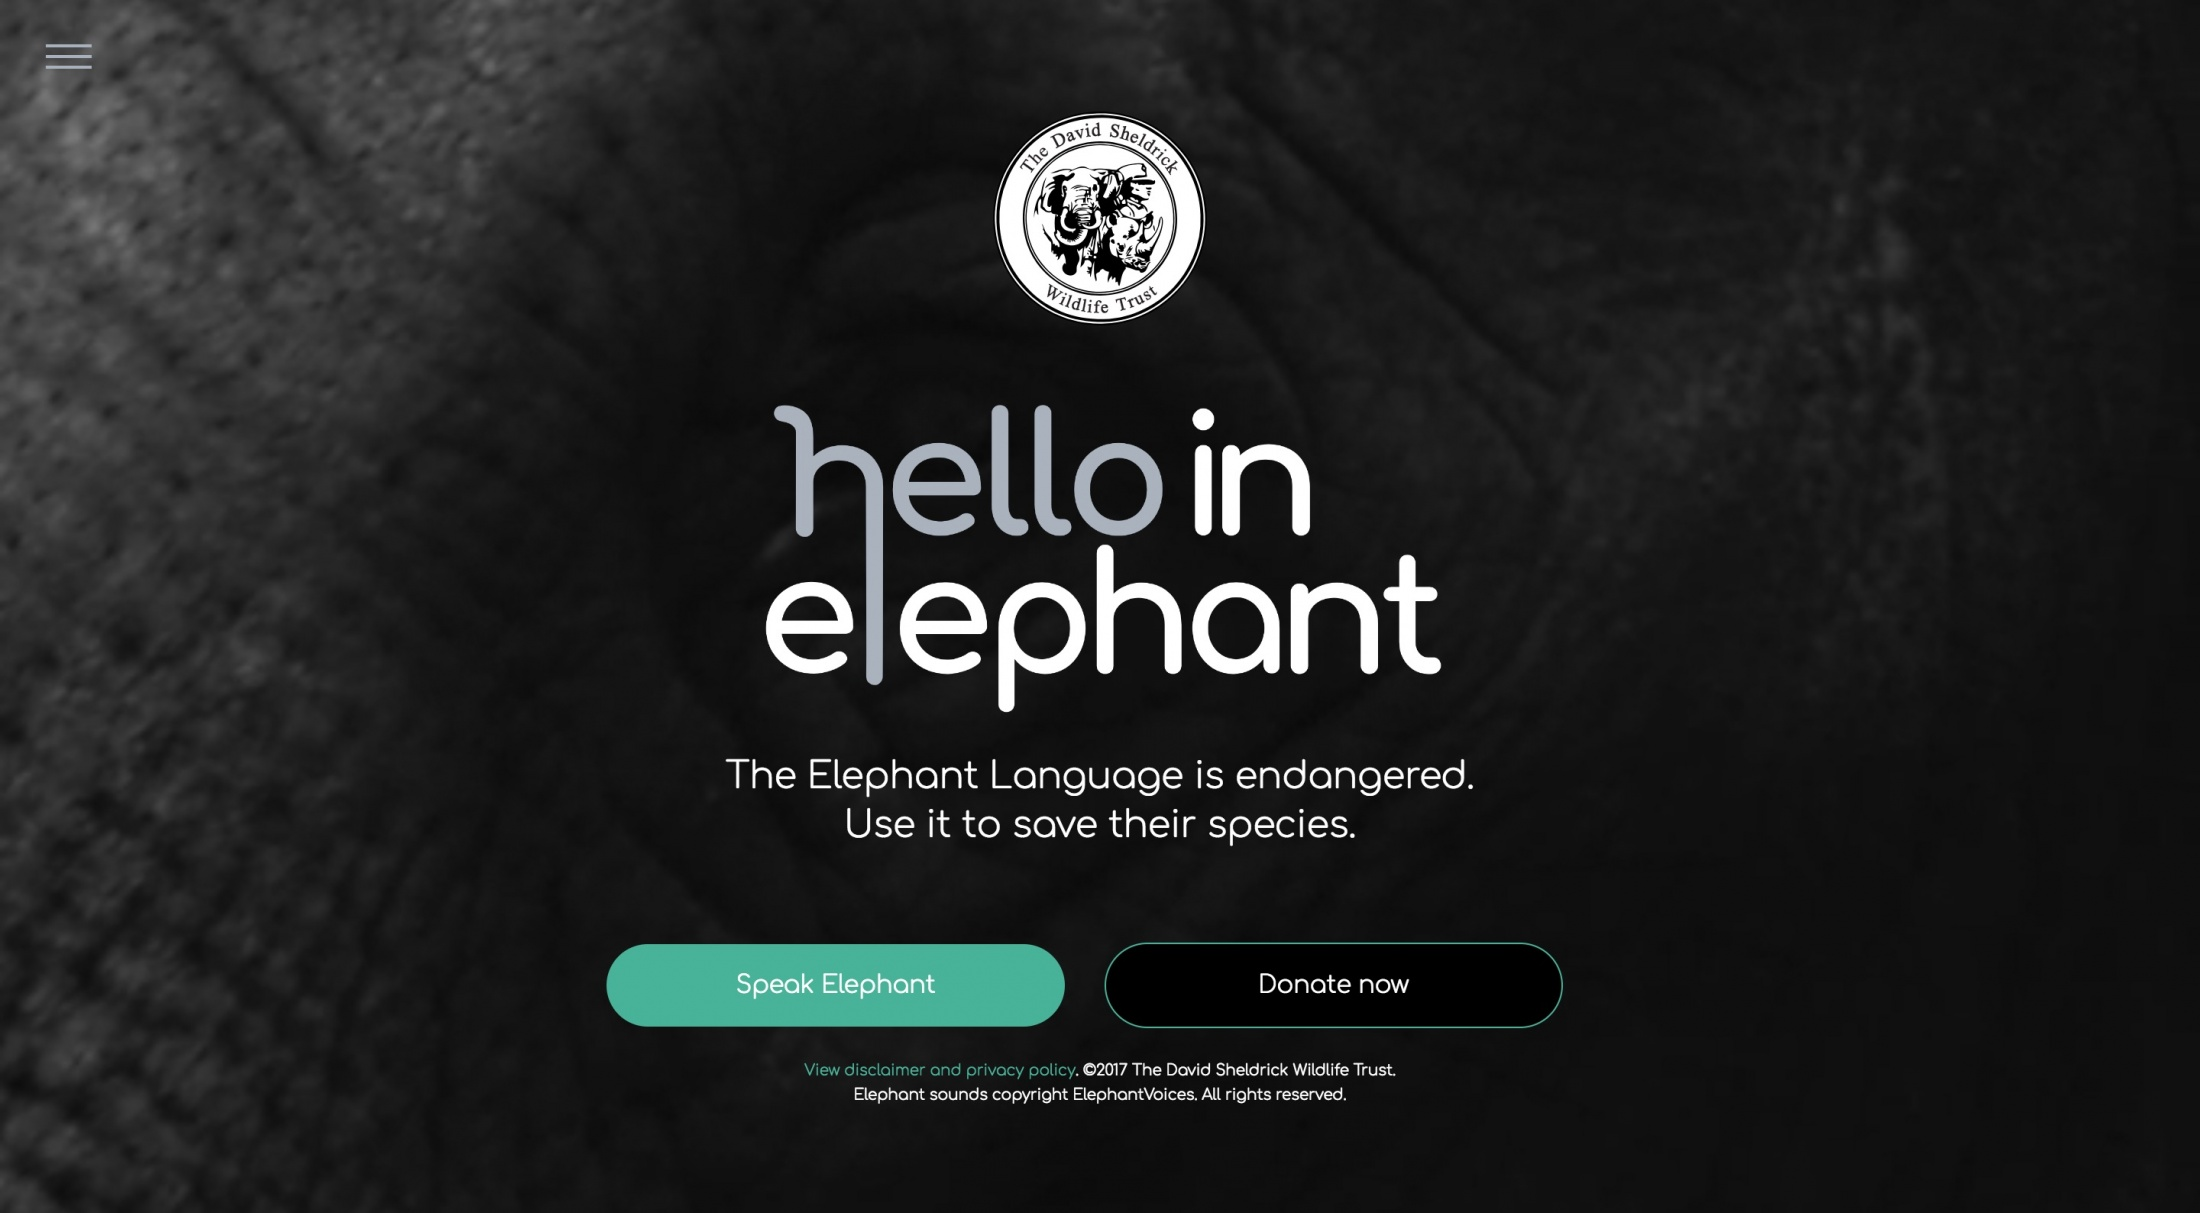 Image Media for Hello in Elephant